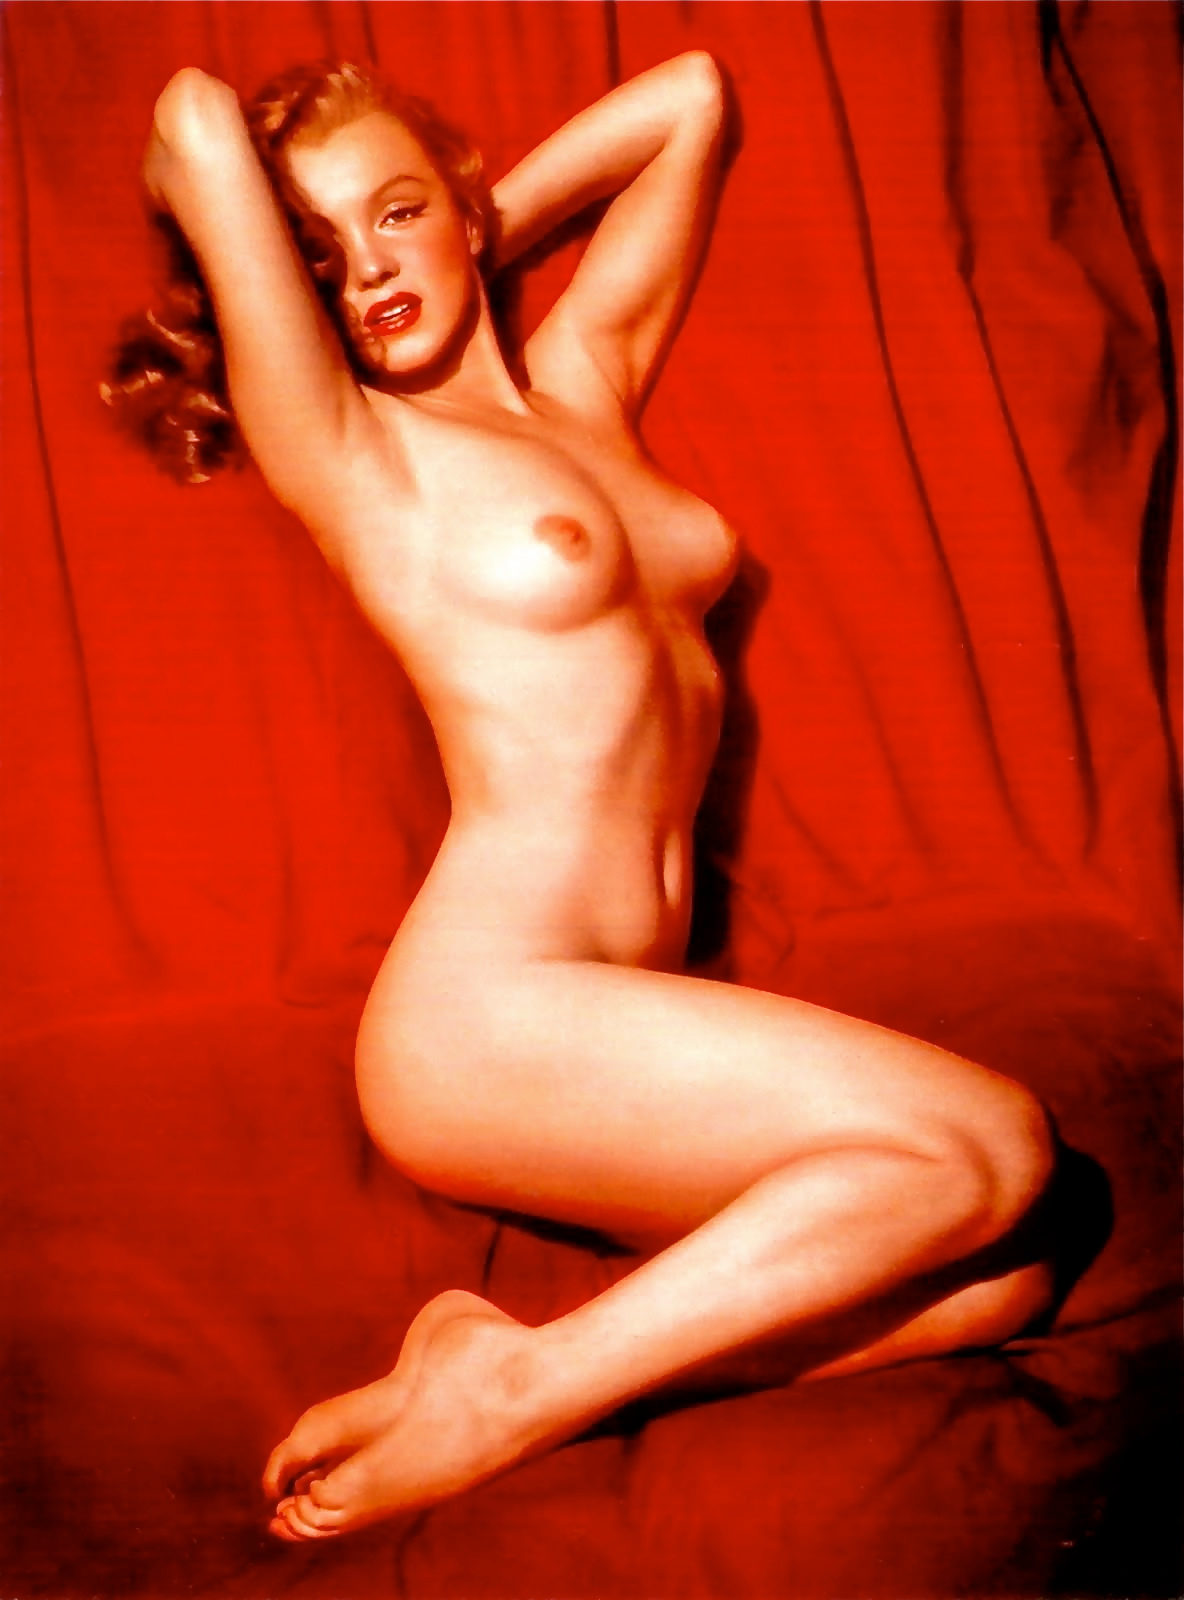 Marilyn monroe nude photos what that